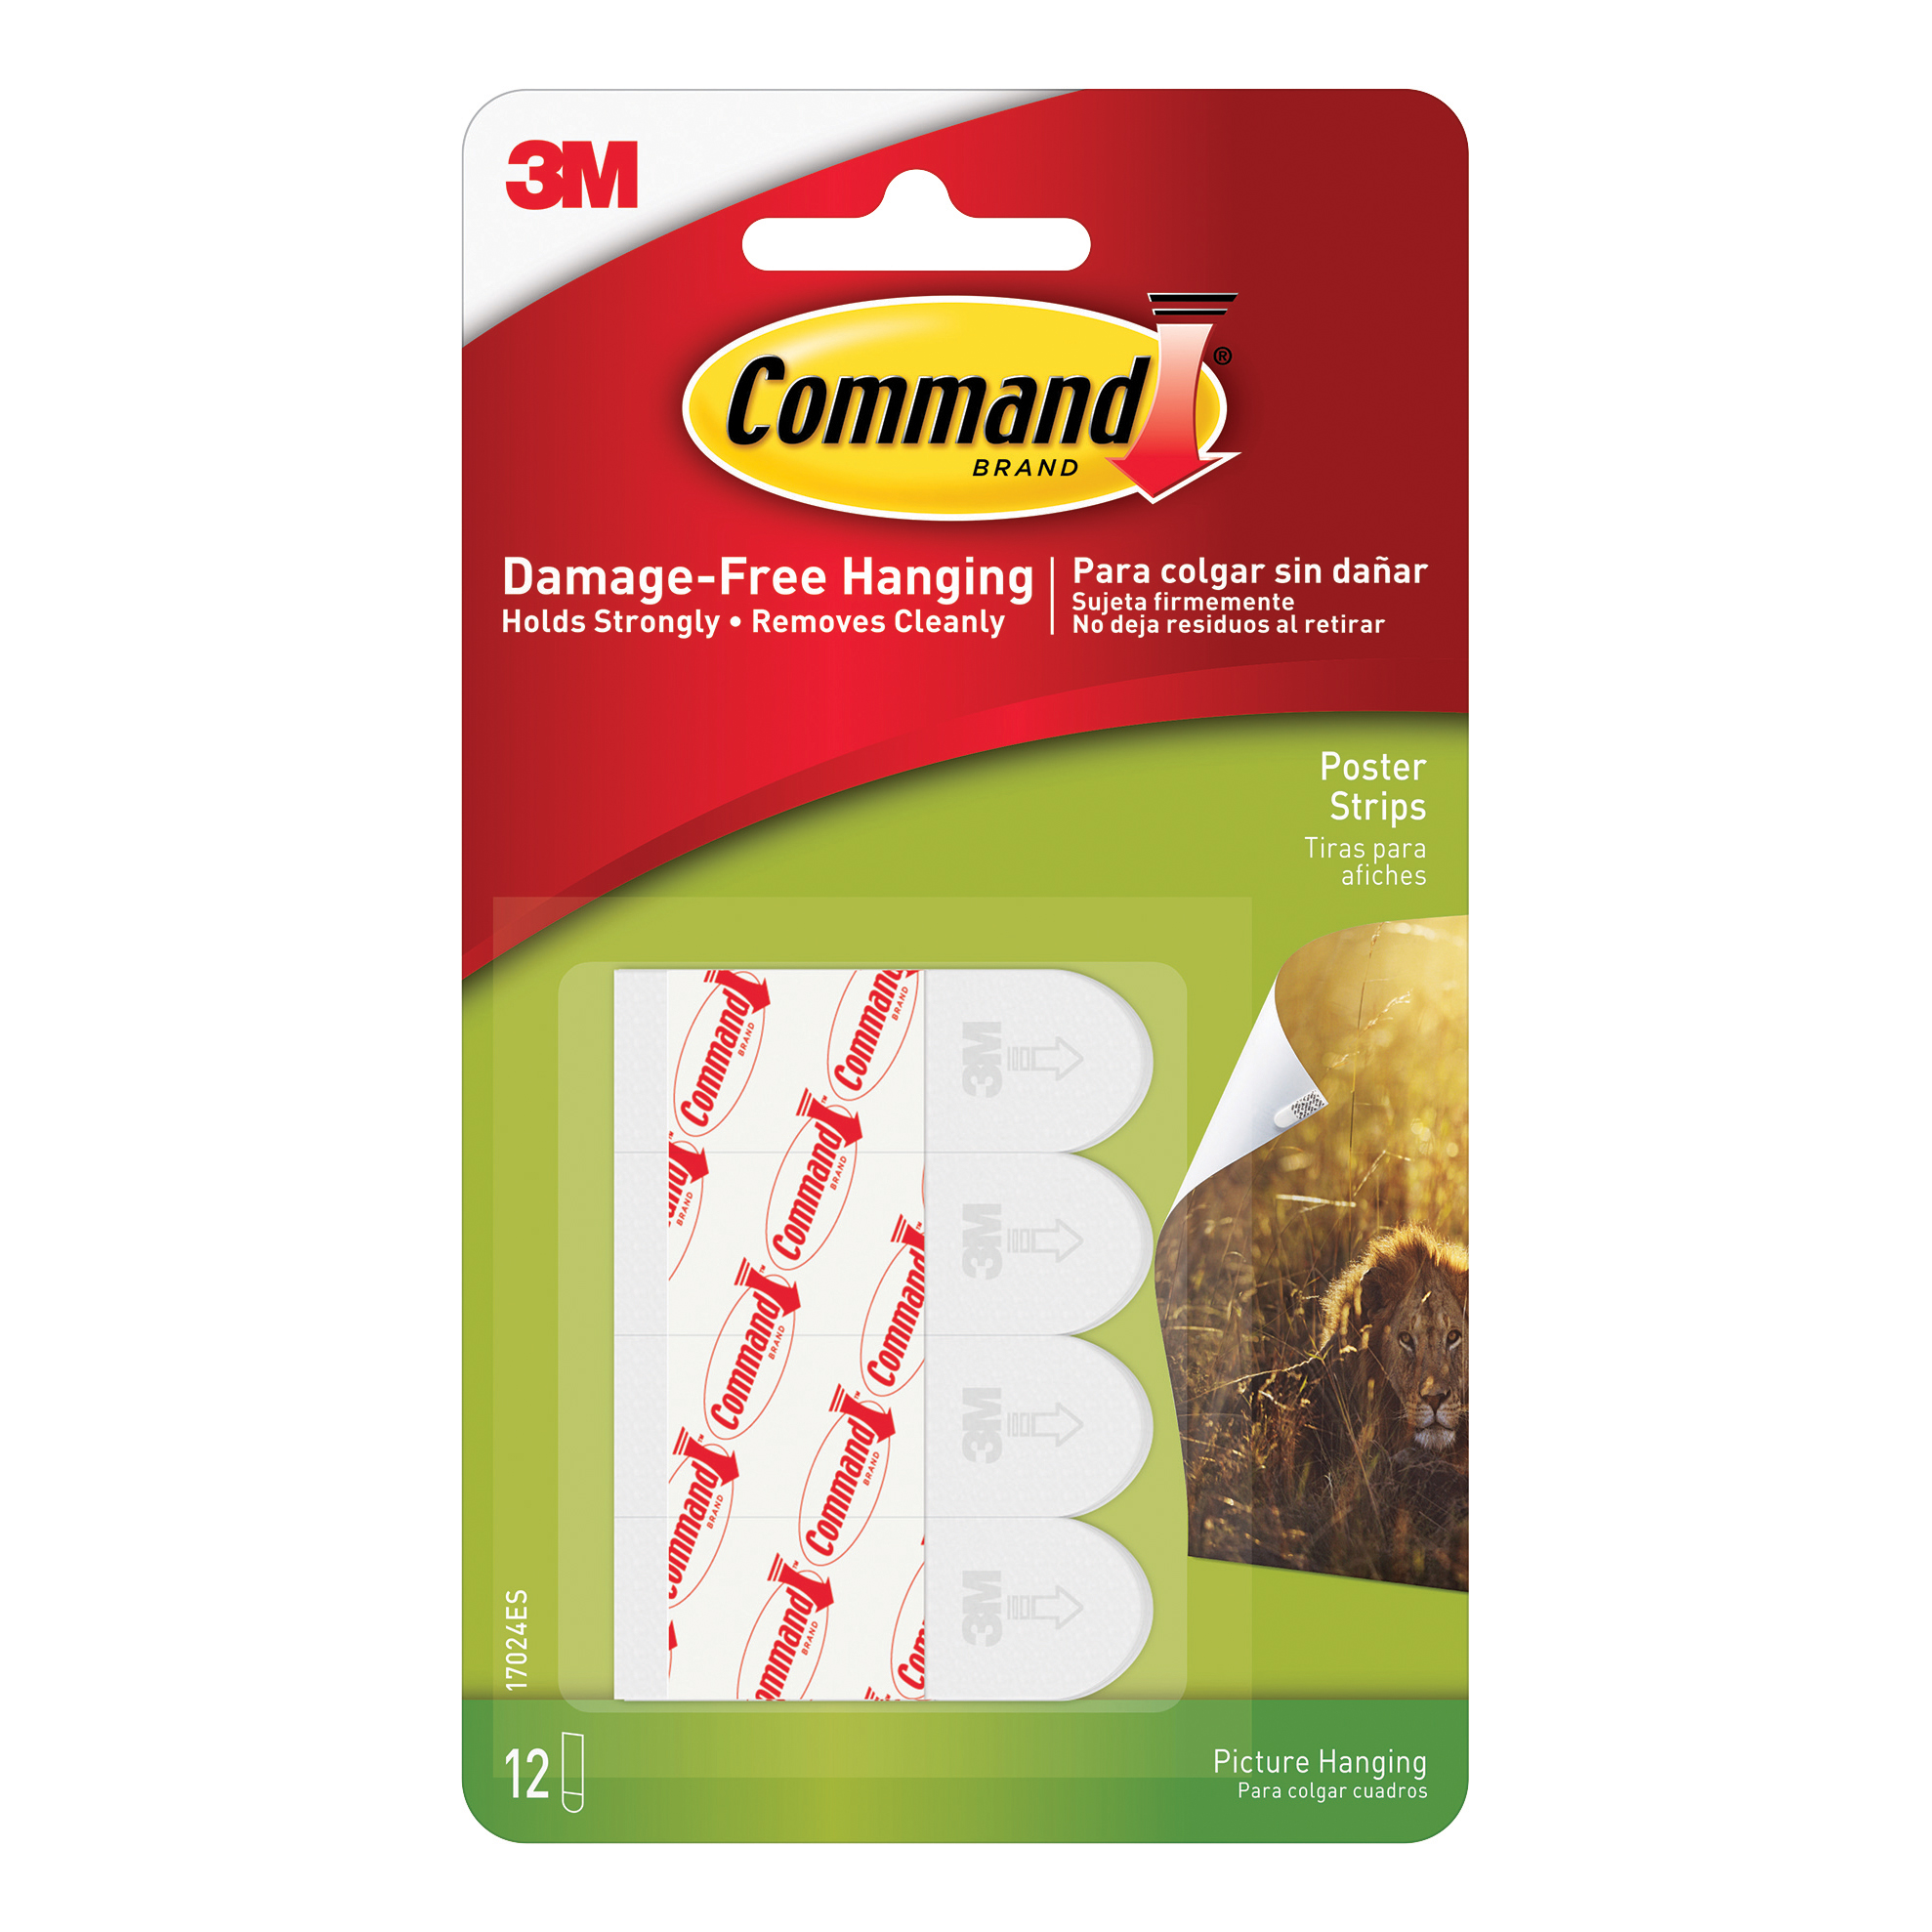 Image for 3M Command Adhesive Poster Strips Clean-removing Holding Capacity 0.45kg Ref 17024 [Pack 12] (0)